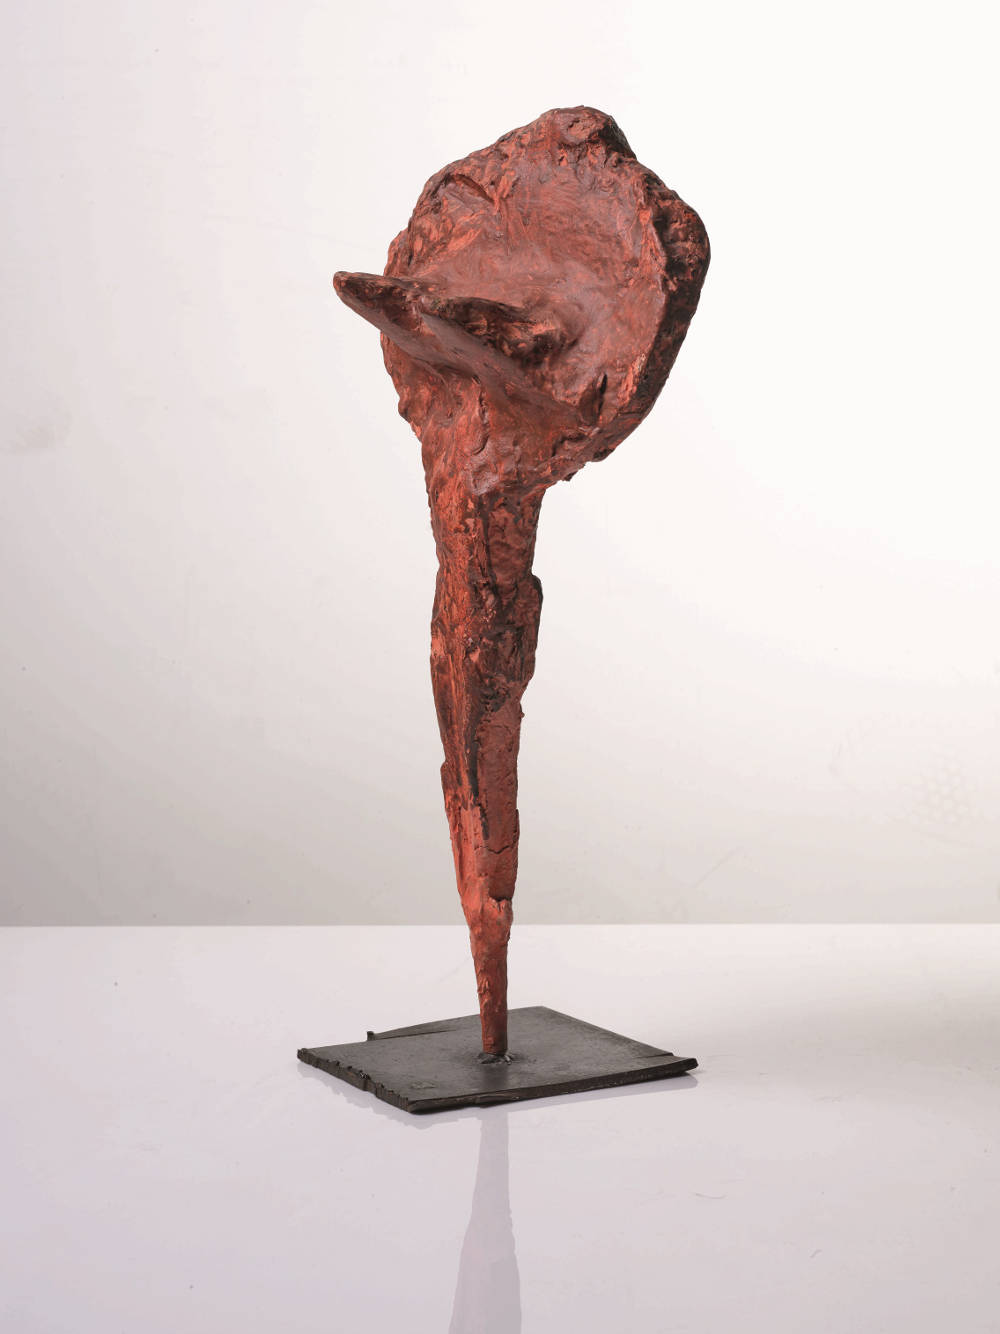 Franz West, Untitled, late 1980s/early 1990s. Papier-mâché, plaster, metal and acrylic 47 by 23 by 16 cm (18 1/2 by 9 1/16 by 6 5/16 in.)